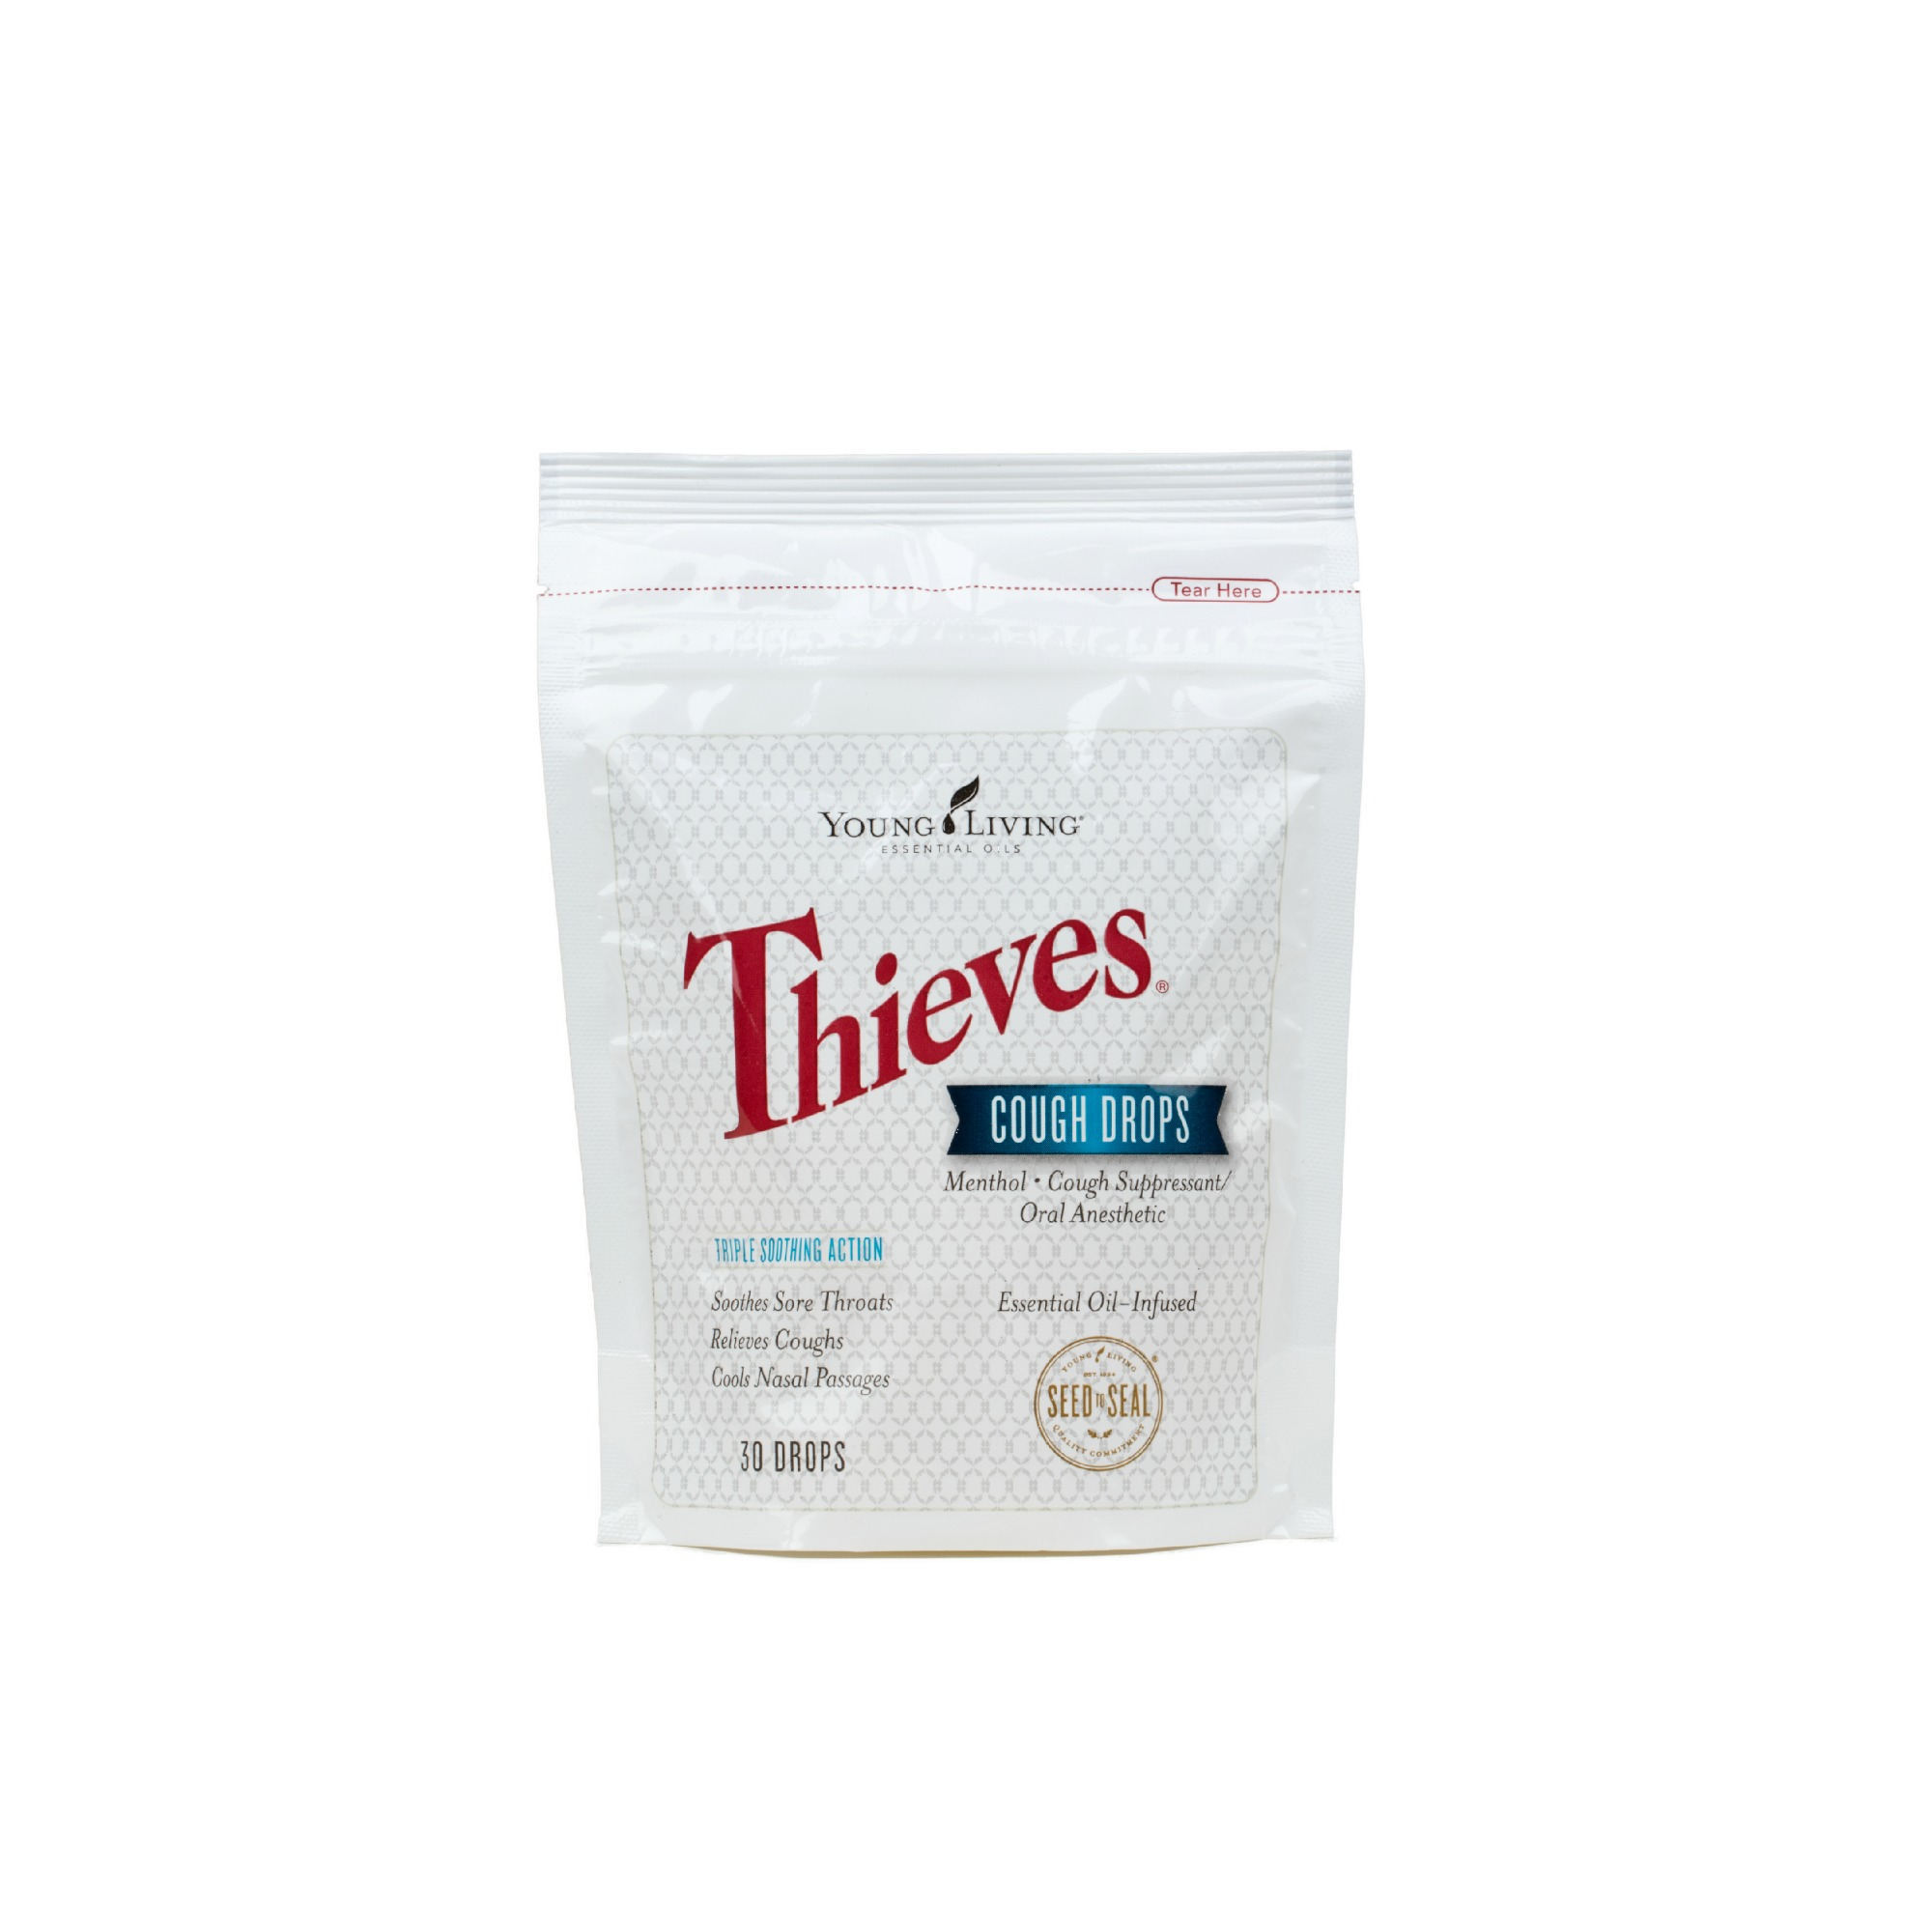 THIEVES COUGH DROPS    Experience the power of Thieves and menthol in a cough drop! Offers comfort by relieving coughs, soothing sore throats, and cooling nasal passages. Minty, spicy, and sweet without processed sugar, dyes, artificial flavors, or preservatives, these cough drops are made with naturally derived ingredients, including Young Living's pure, therapeutic-grade essential oils and menthol from Peppermint.   Click here   to learn more about this product.